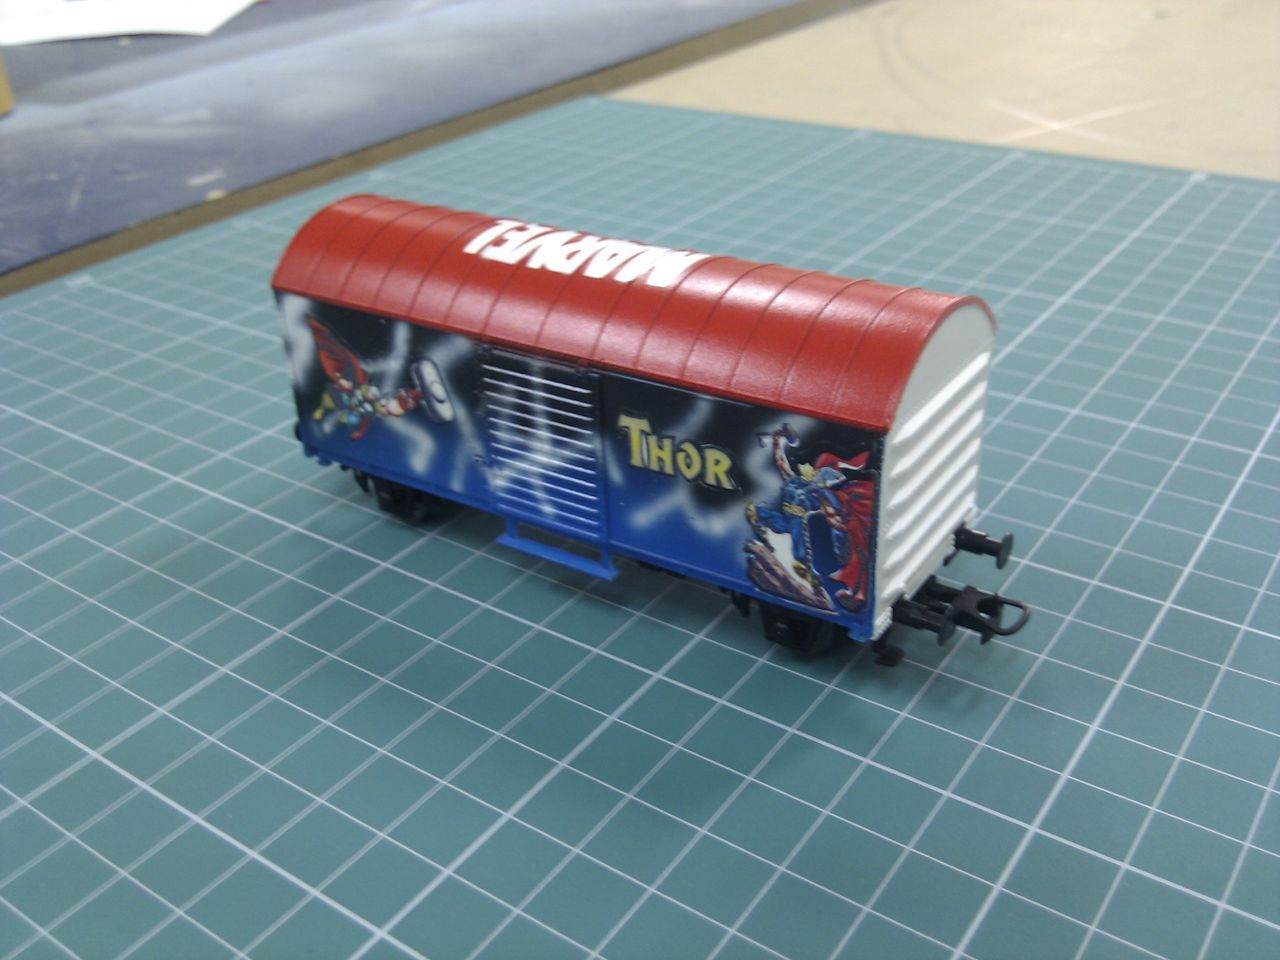 Vagón personalizado (marvel) custom wagon (marvel)